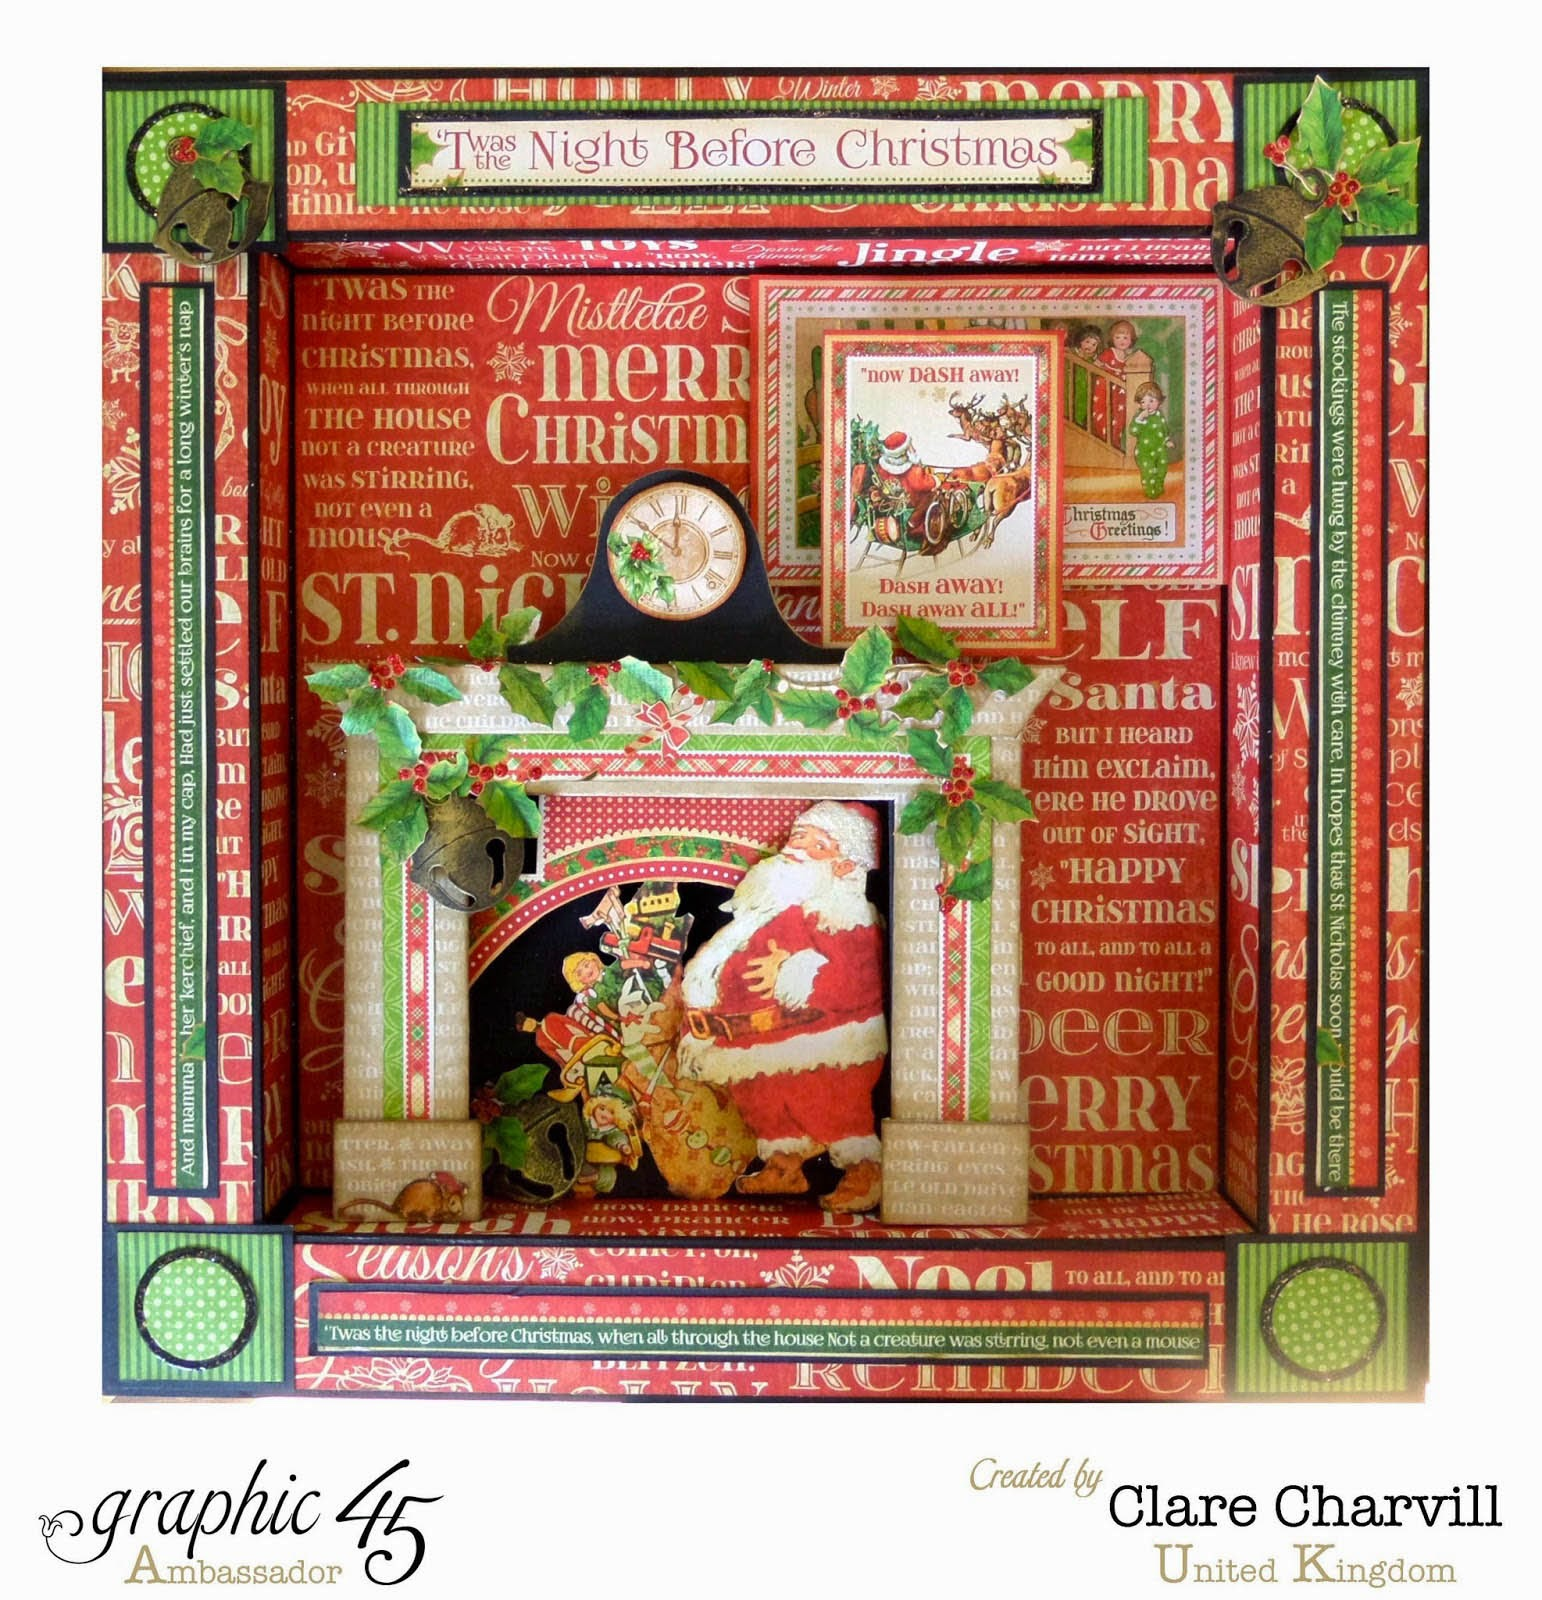 Twas the Night Before Christmas 12 x 12 Shadow Box Clare Charvill Graphic 45 Candy Box Crafts